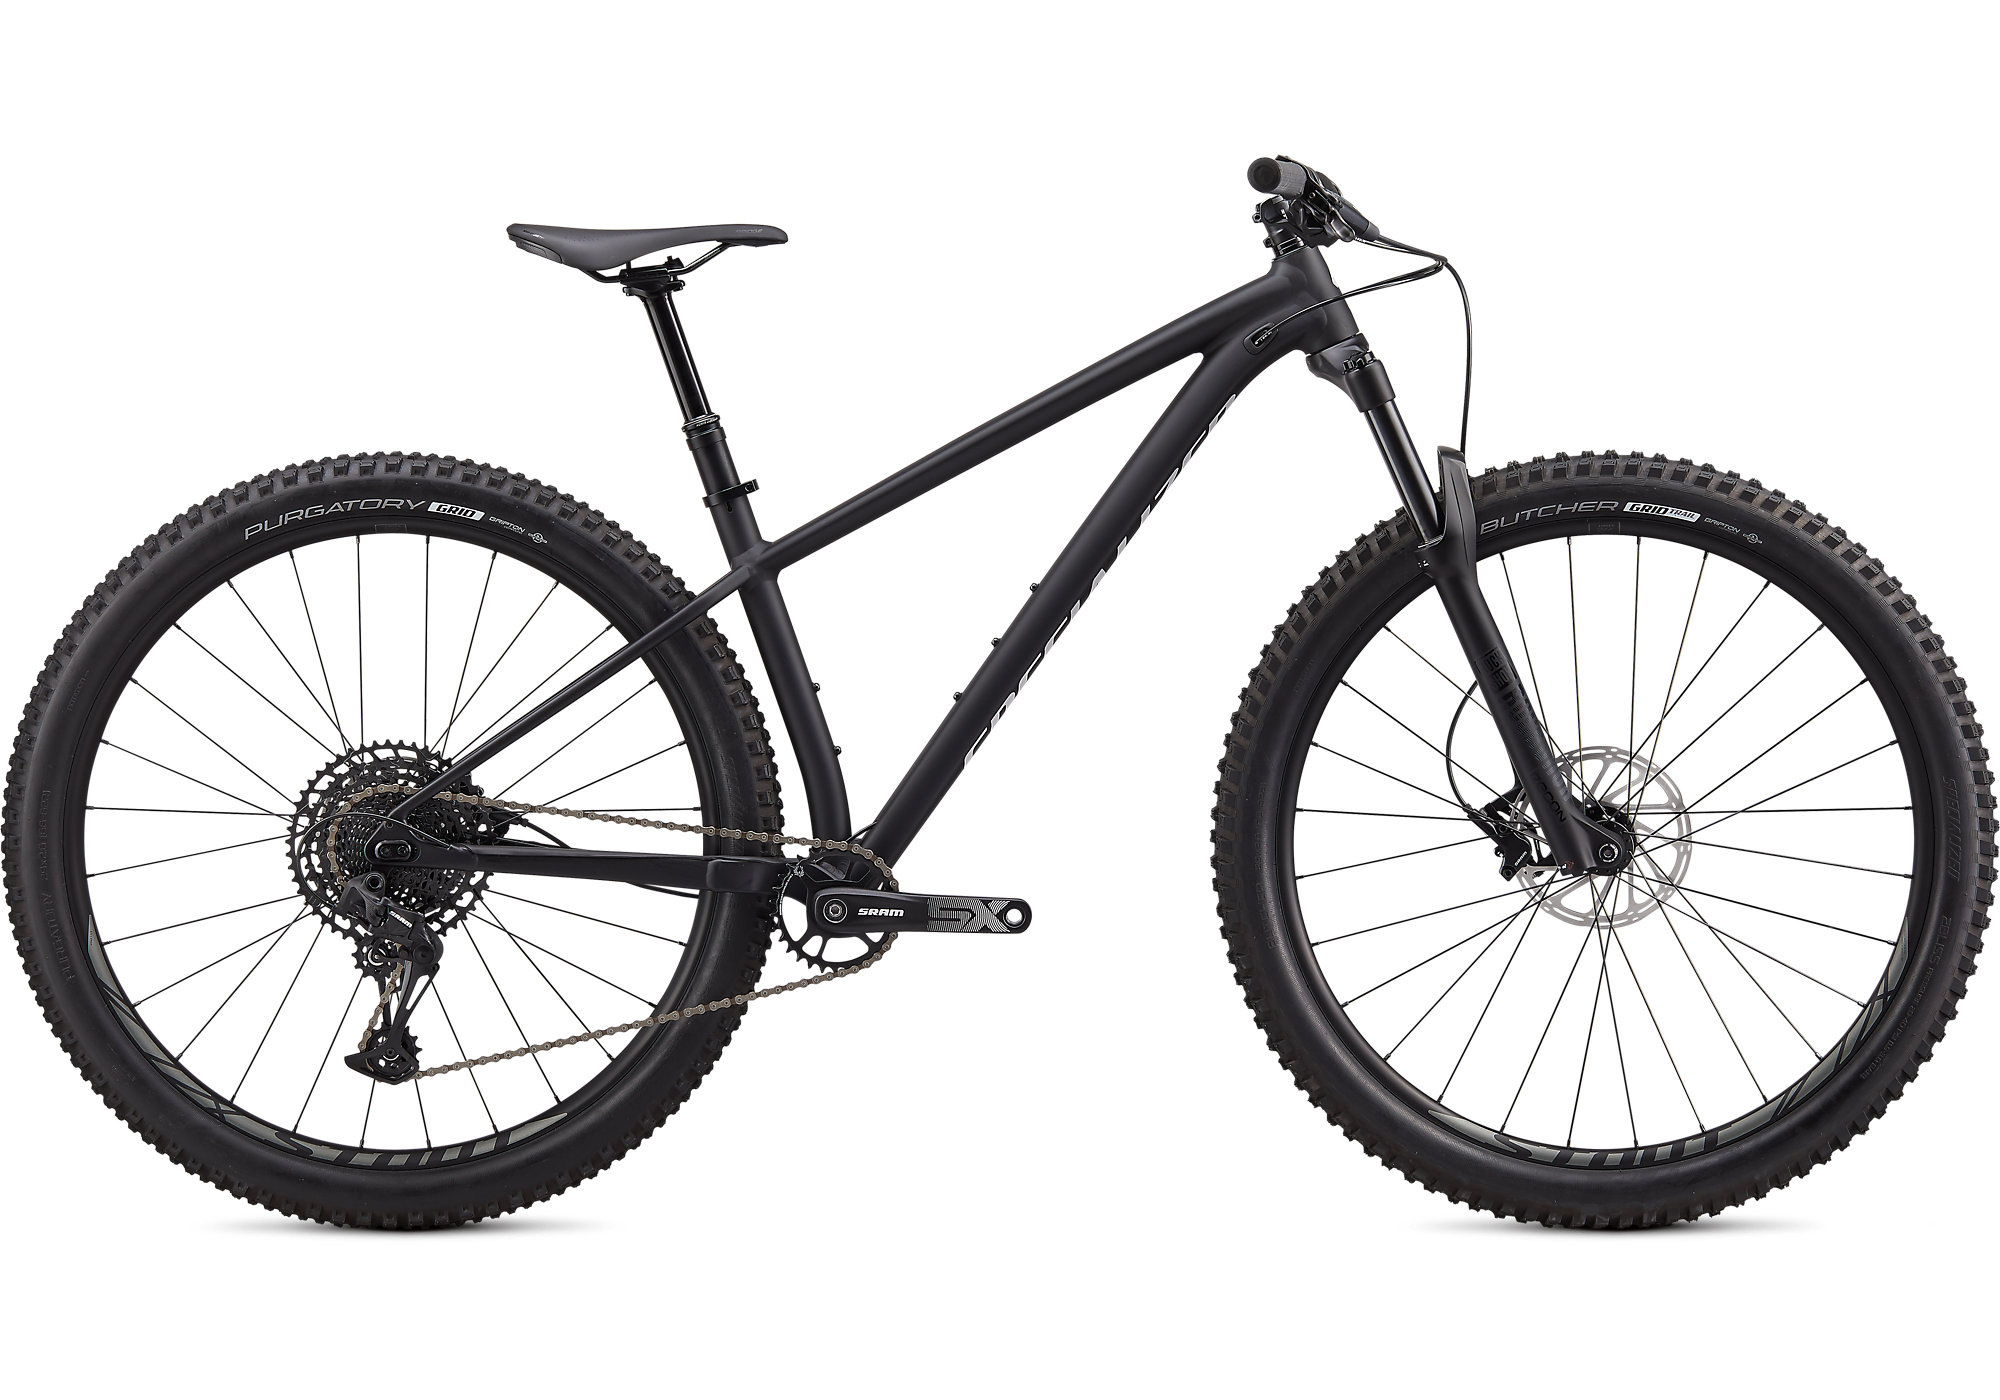 2020 Specialized Fuse Comp 29 Mountain Bike in Black £1,299.00